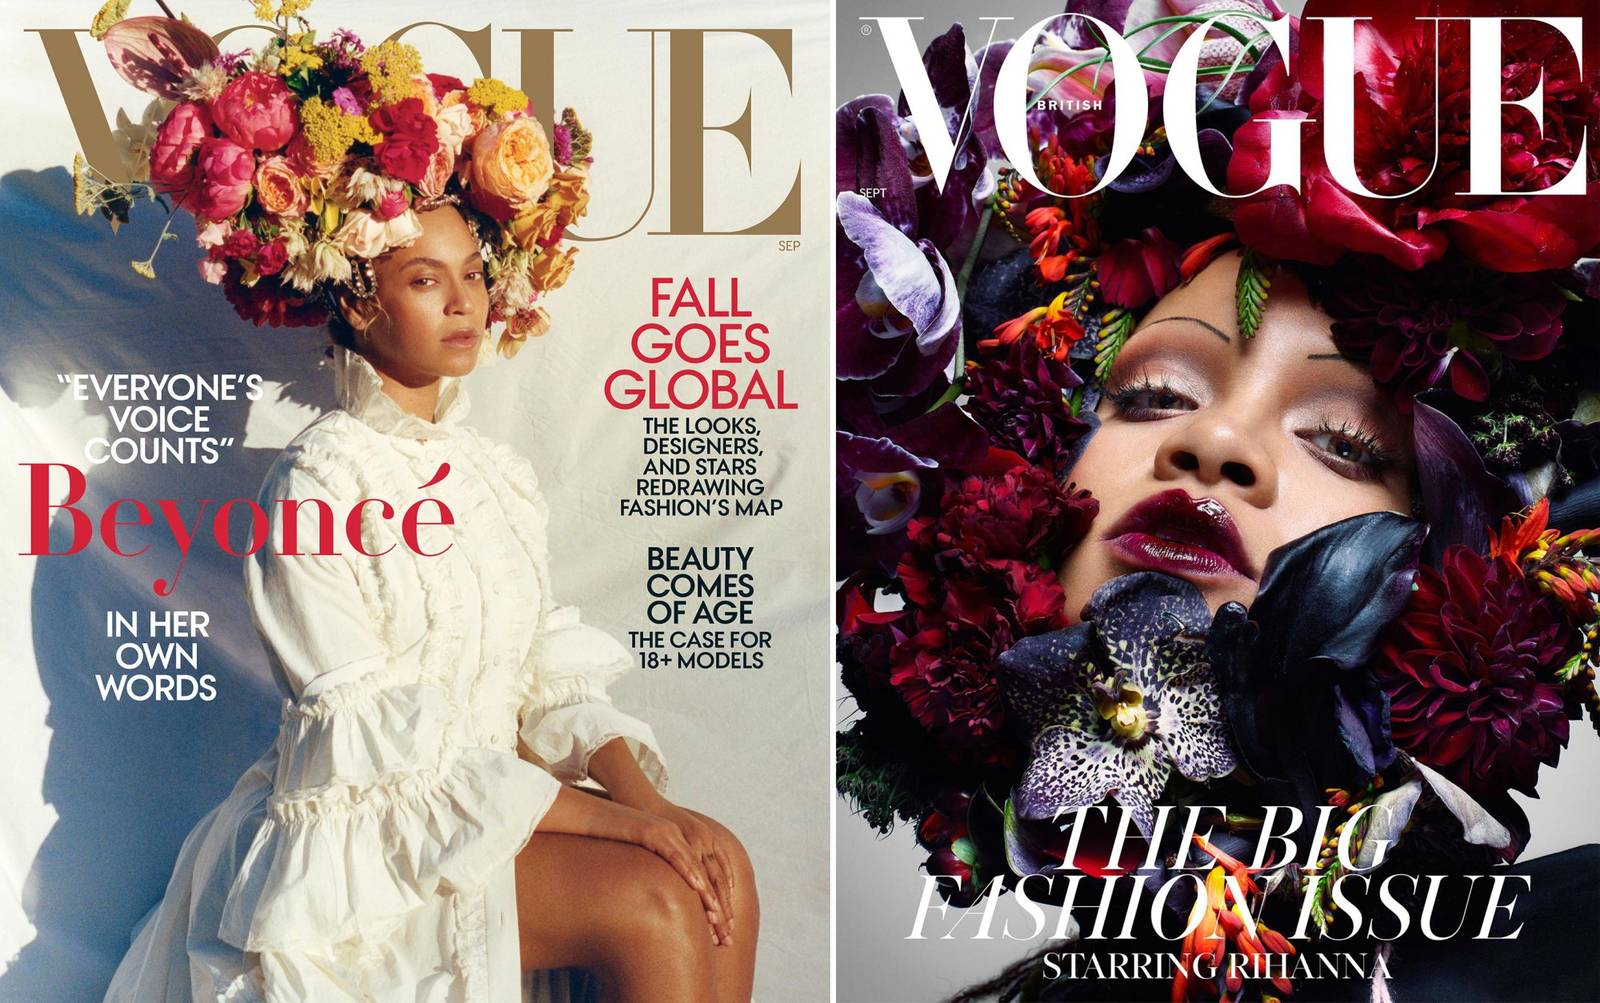 Celeb Battle Of The Floral Headpiece: Who Rocked It Better? Rihanna or Beyonce?